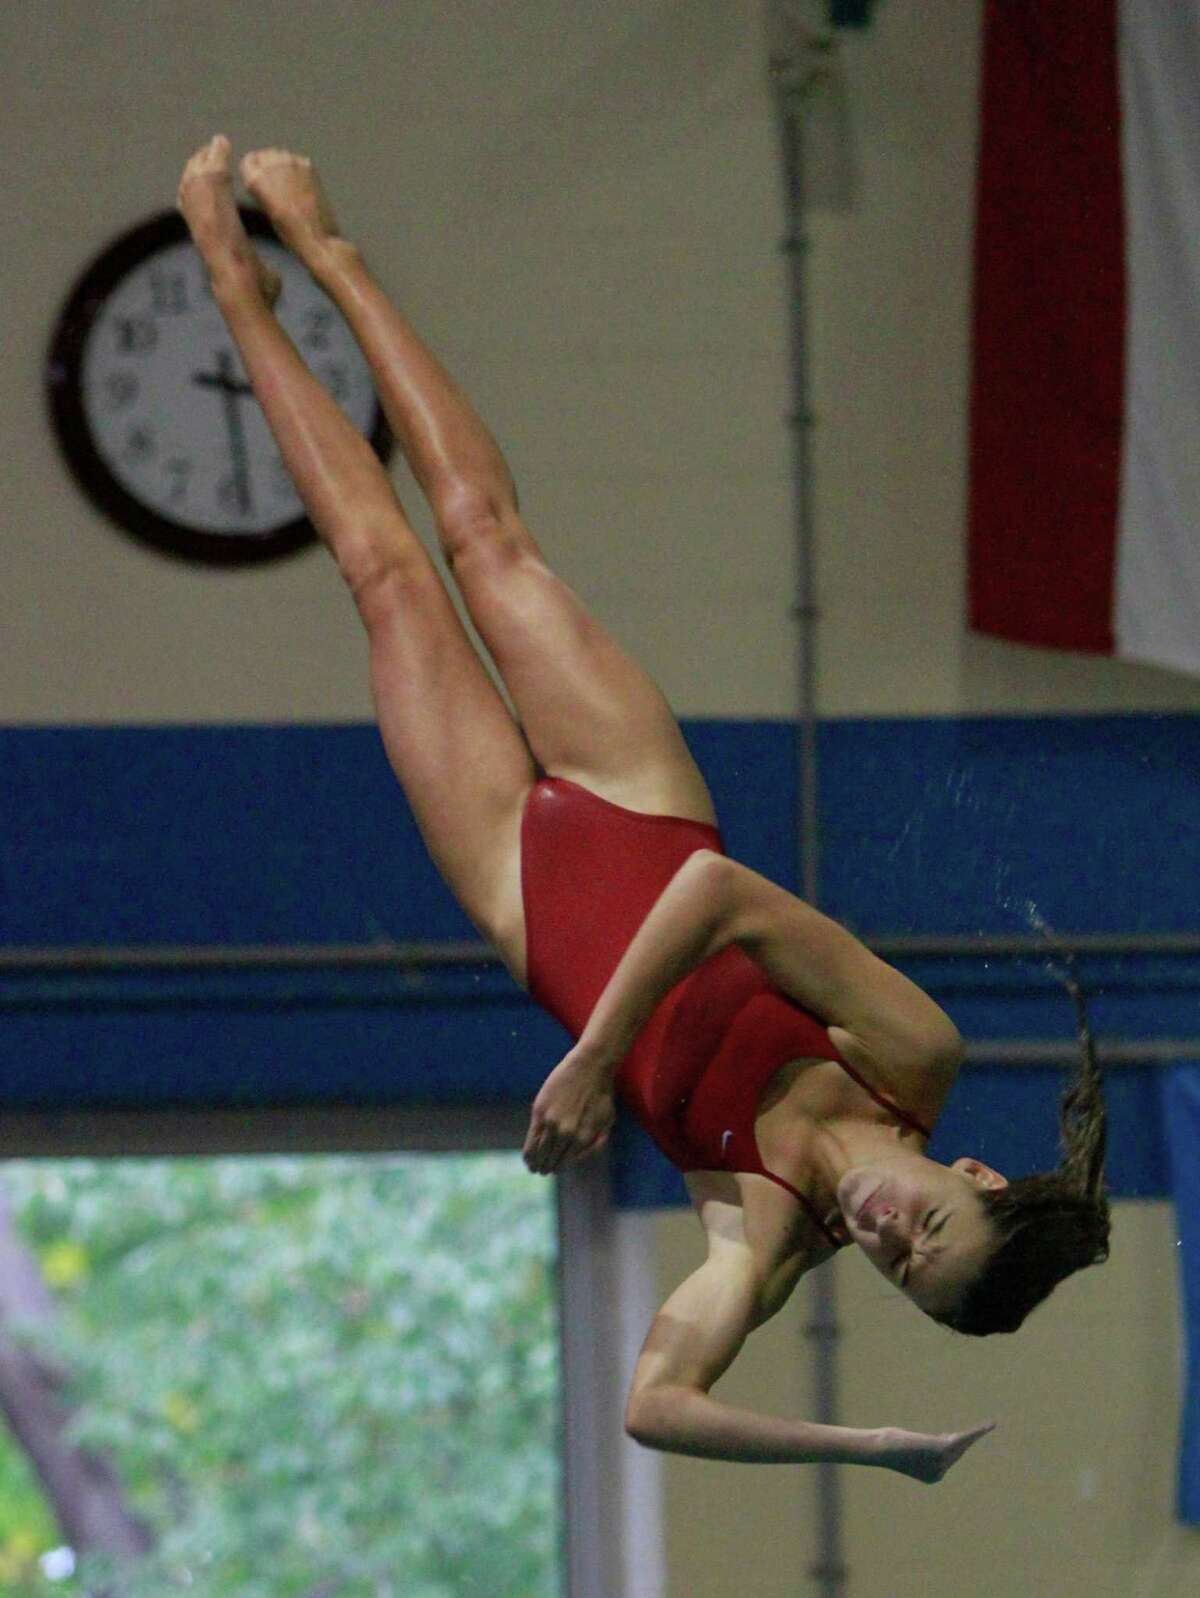 Greenwich's Annabelle Pollack competes in the Diving event of a varsity girls swim meet against New Canaan in New Canaan on Tuesday, Sept. 29, 2015.